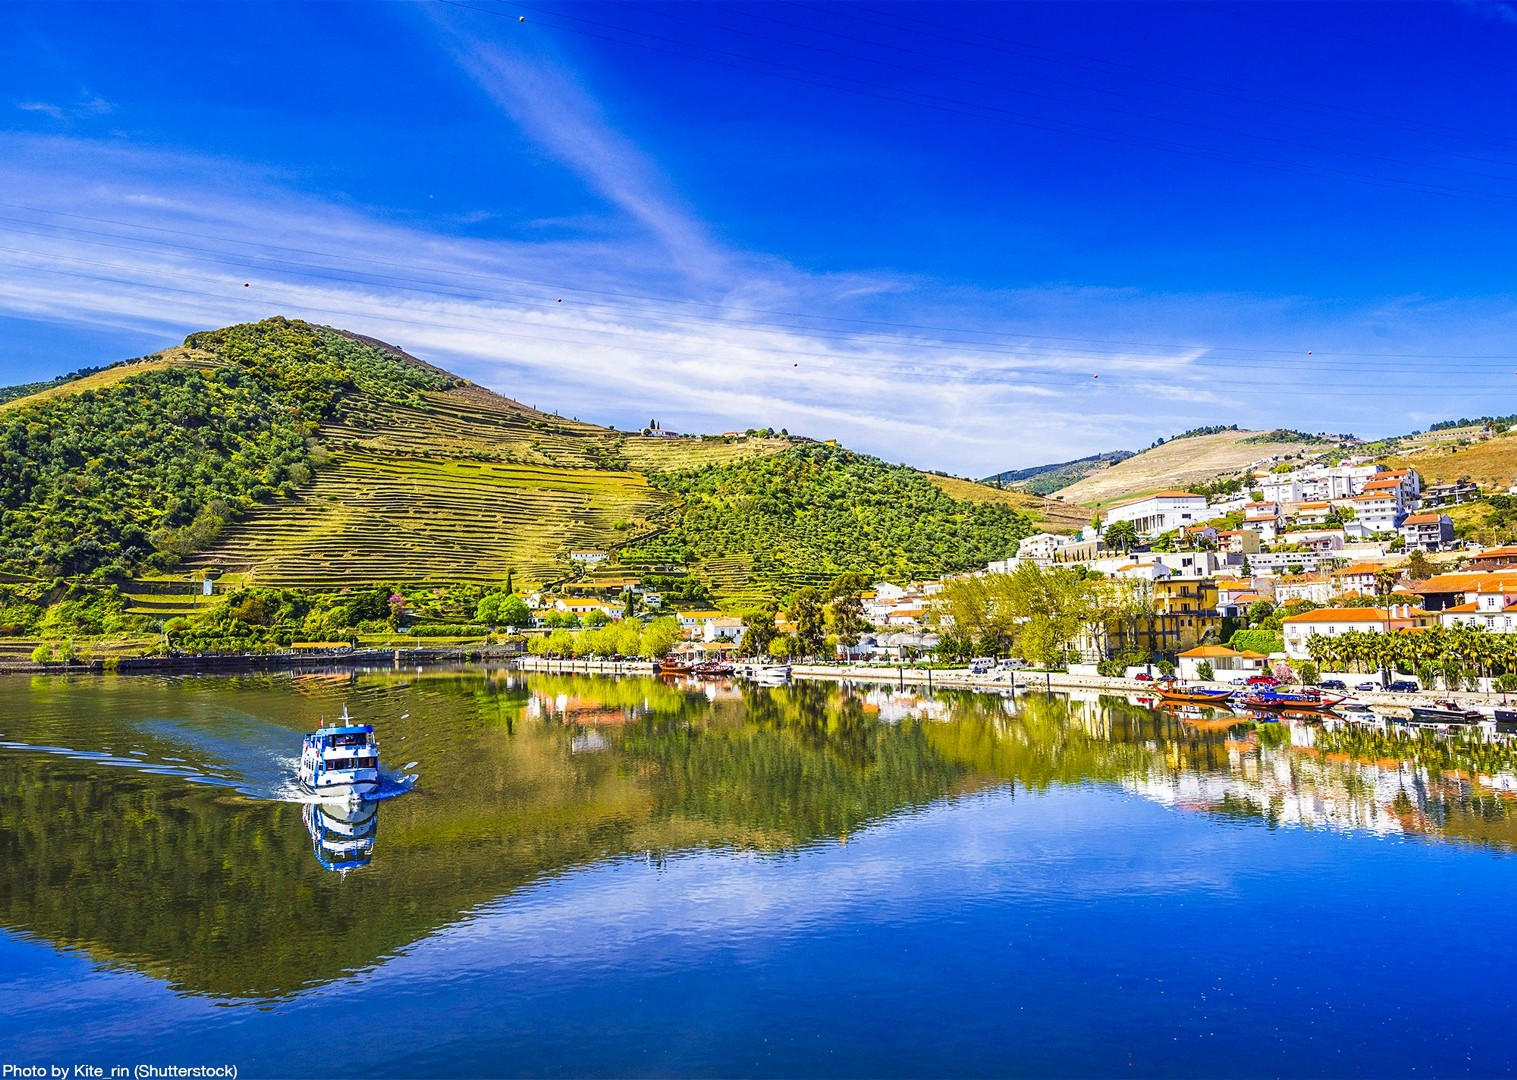 pinhao-douro-portugal-cycling-holiday-self-guided-fun-beautiful.jpg - Portugal - Port and Wine - Self Guided Leisure Cycling Holiday - Leisure Cycling